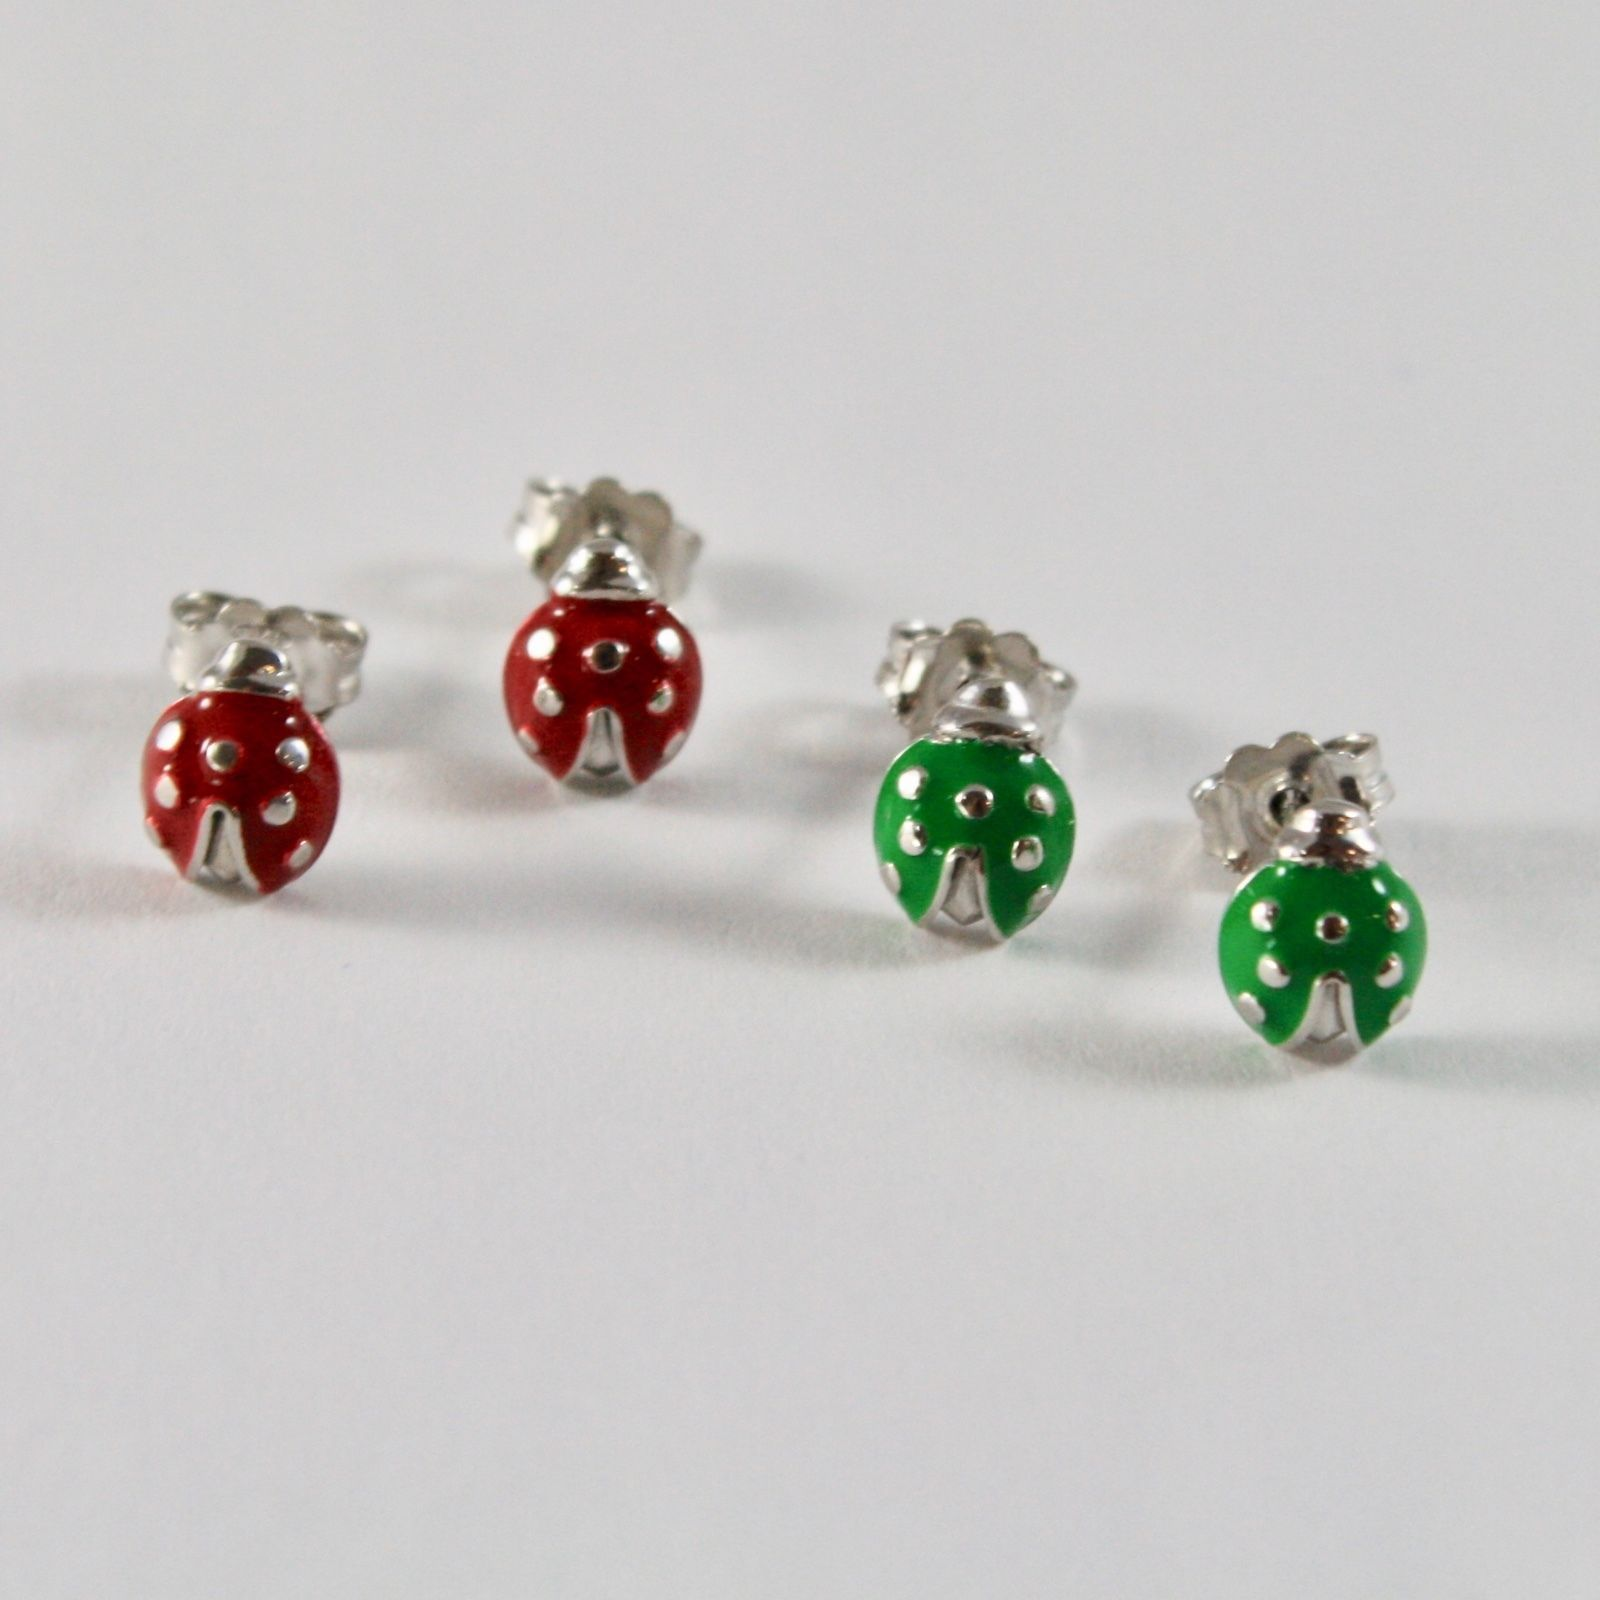 EARRINGS SILVER 925 JACK&CO WITH LADYBUG ENAMELLED RED 0,5 GREEN